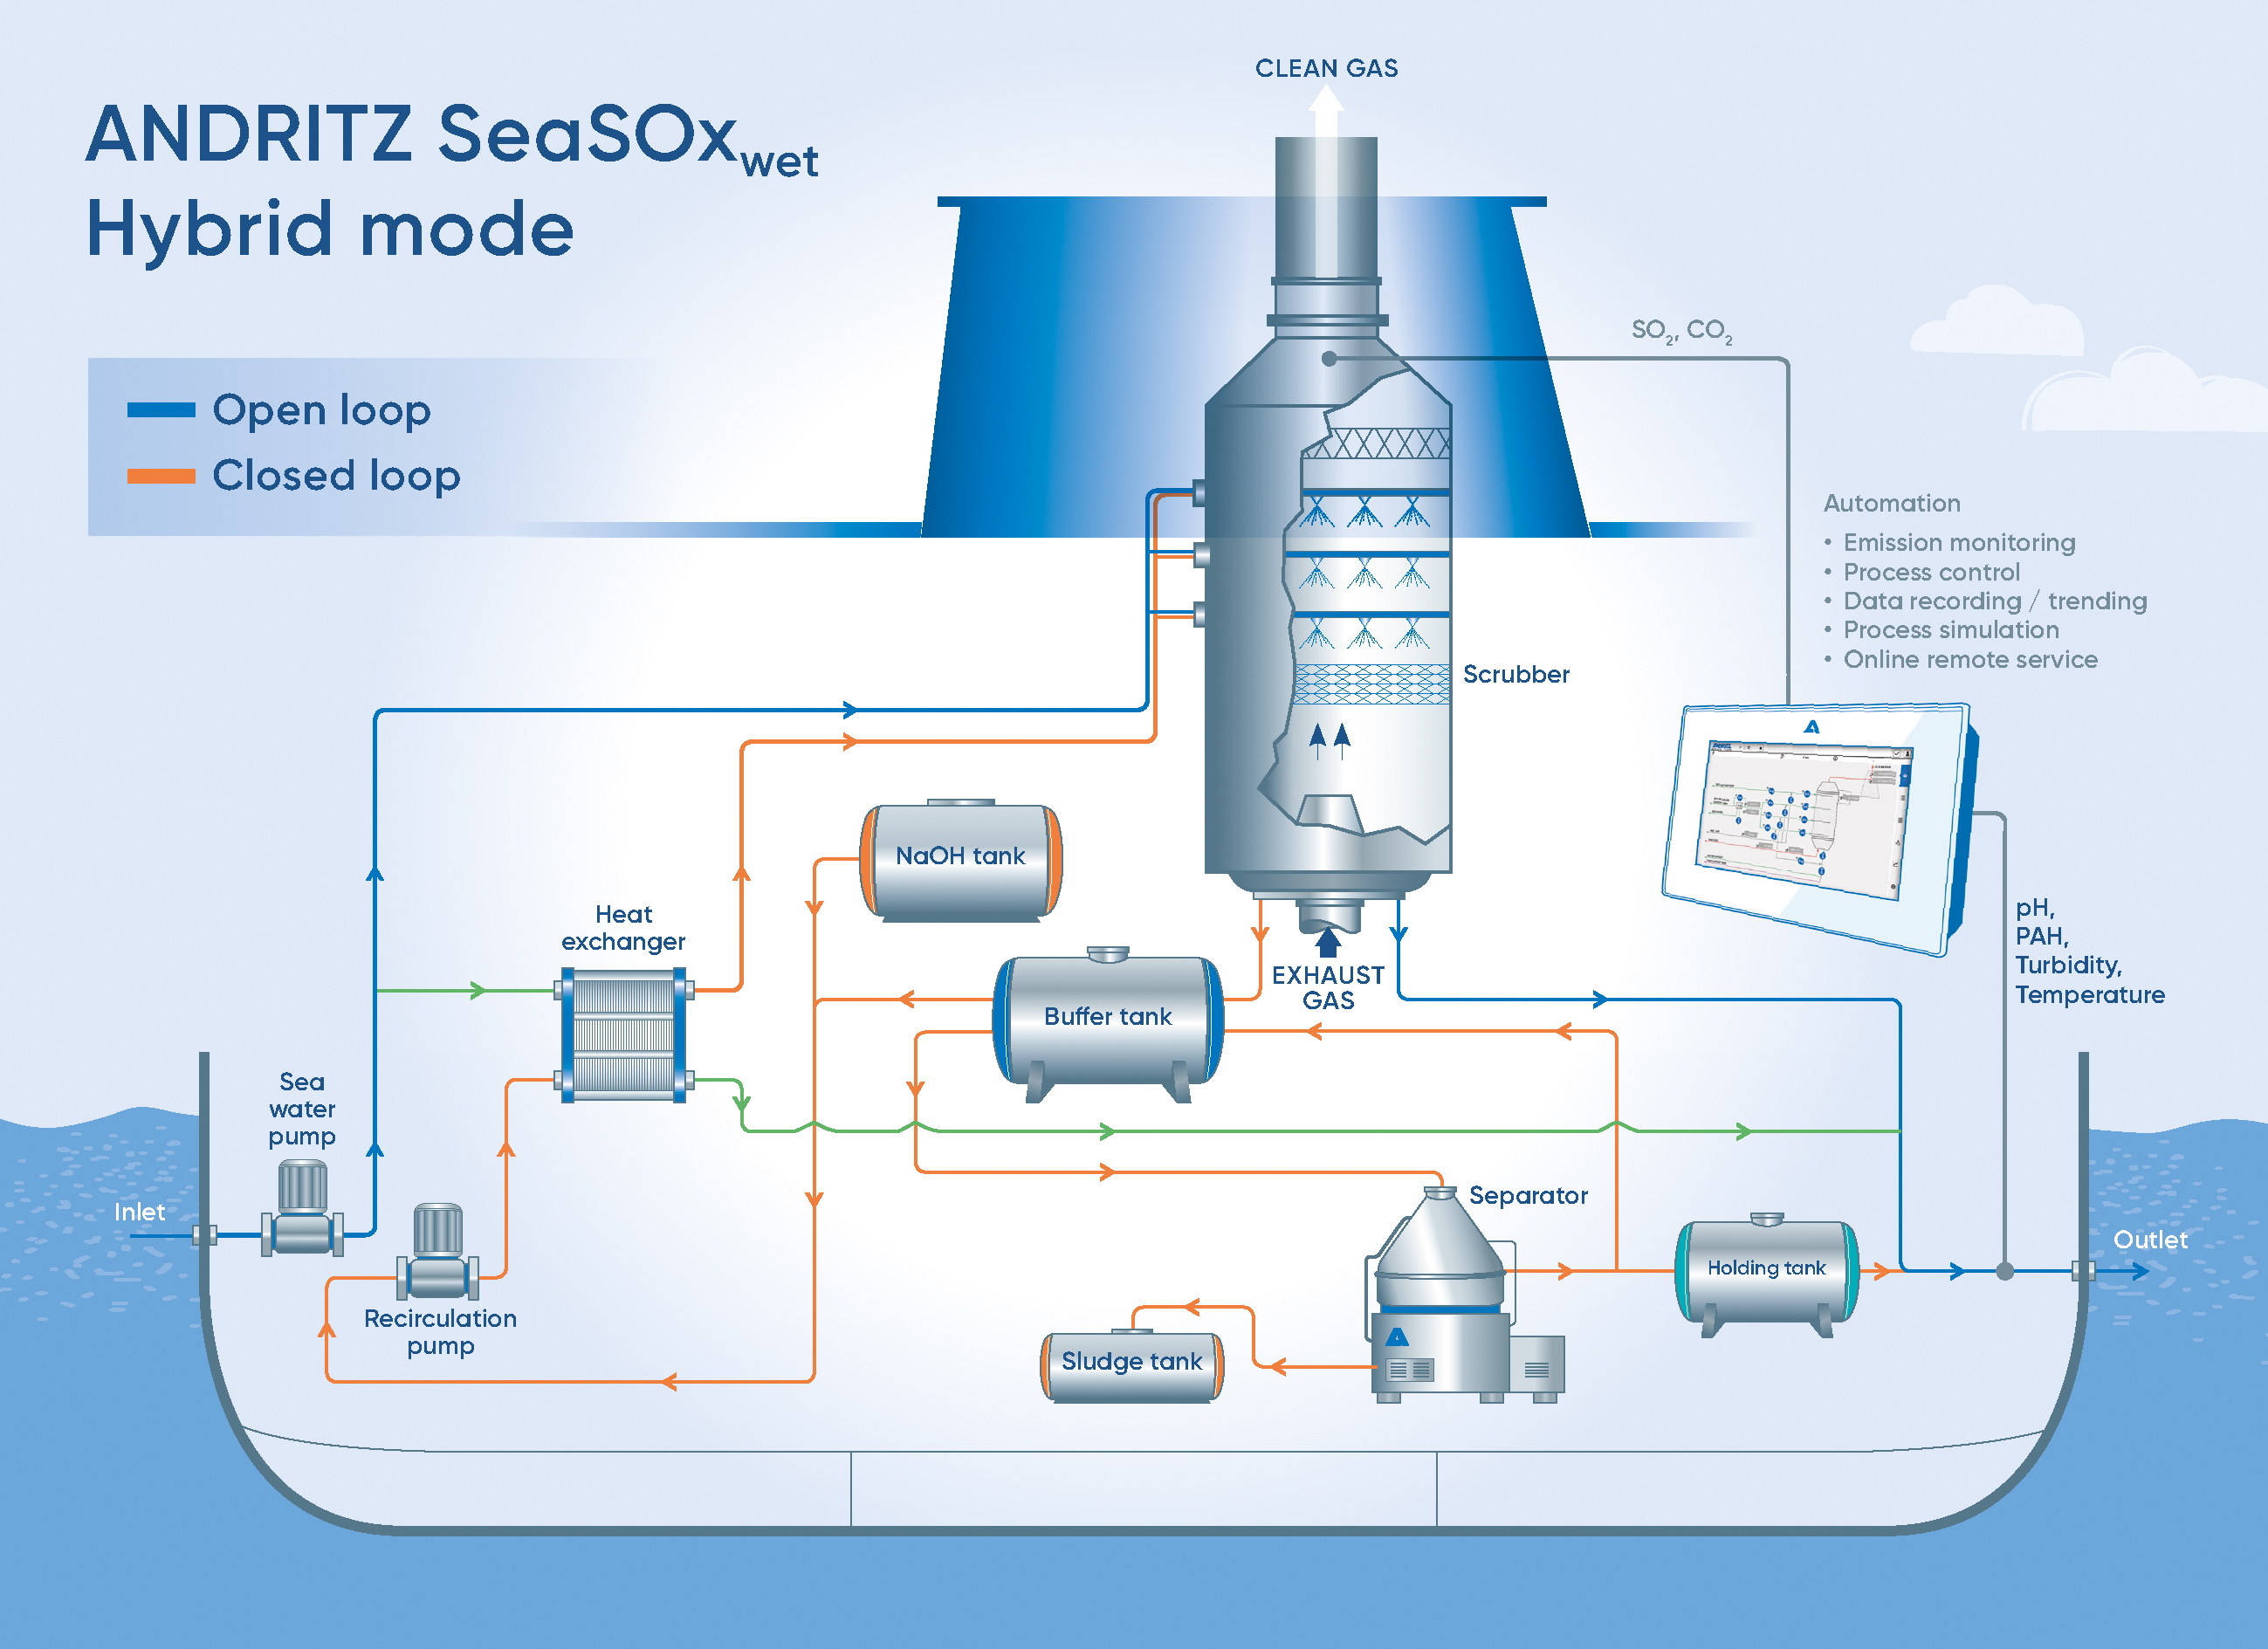 Exhaust gas cleaning - SeaSOx wet technology